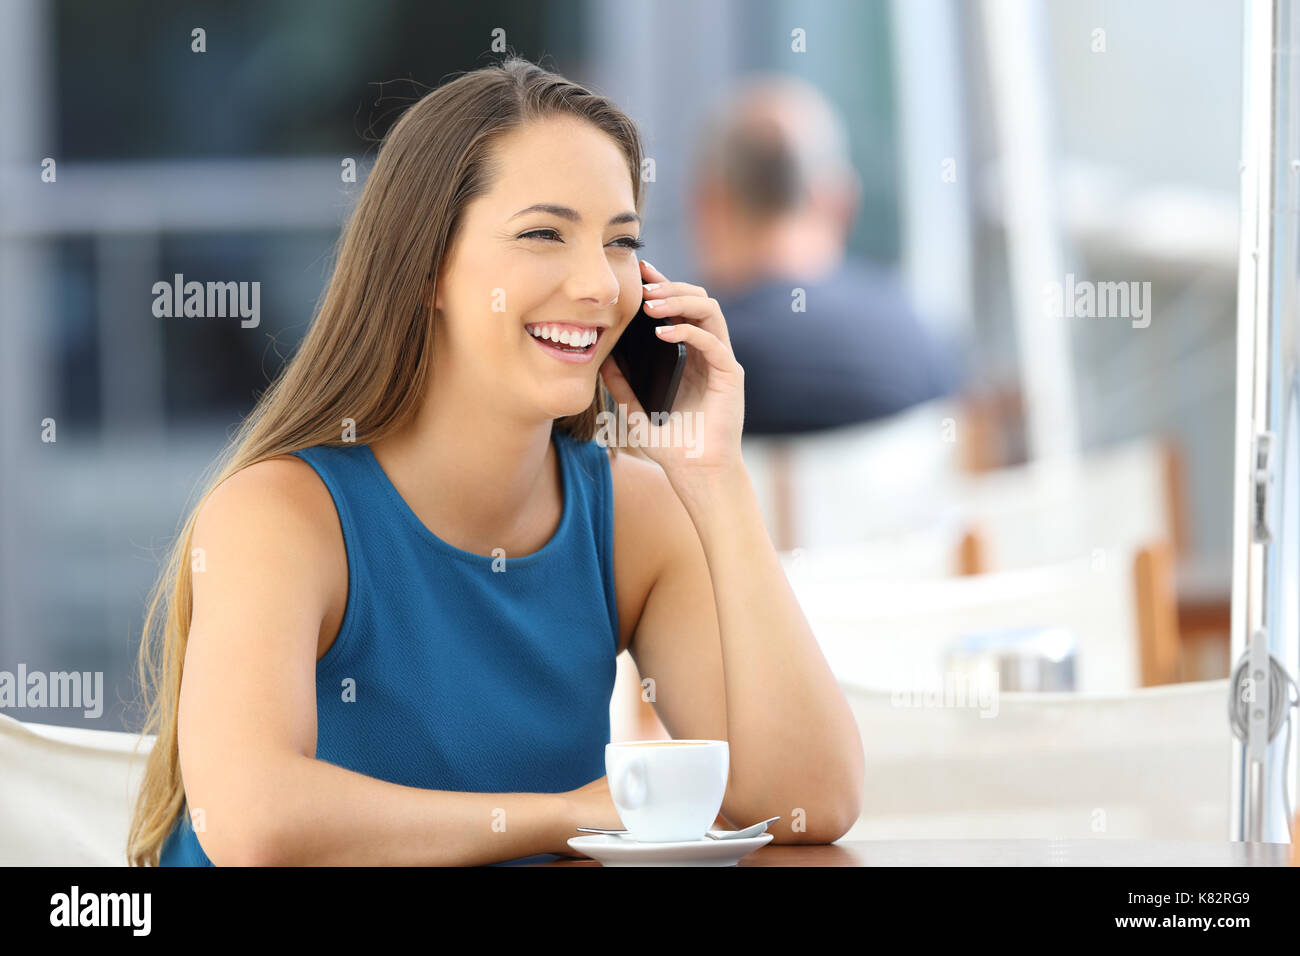 Single woman having a phone conversation sitting in a bar terrace - Stock Image